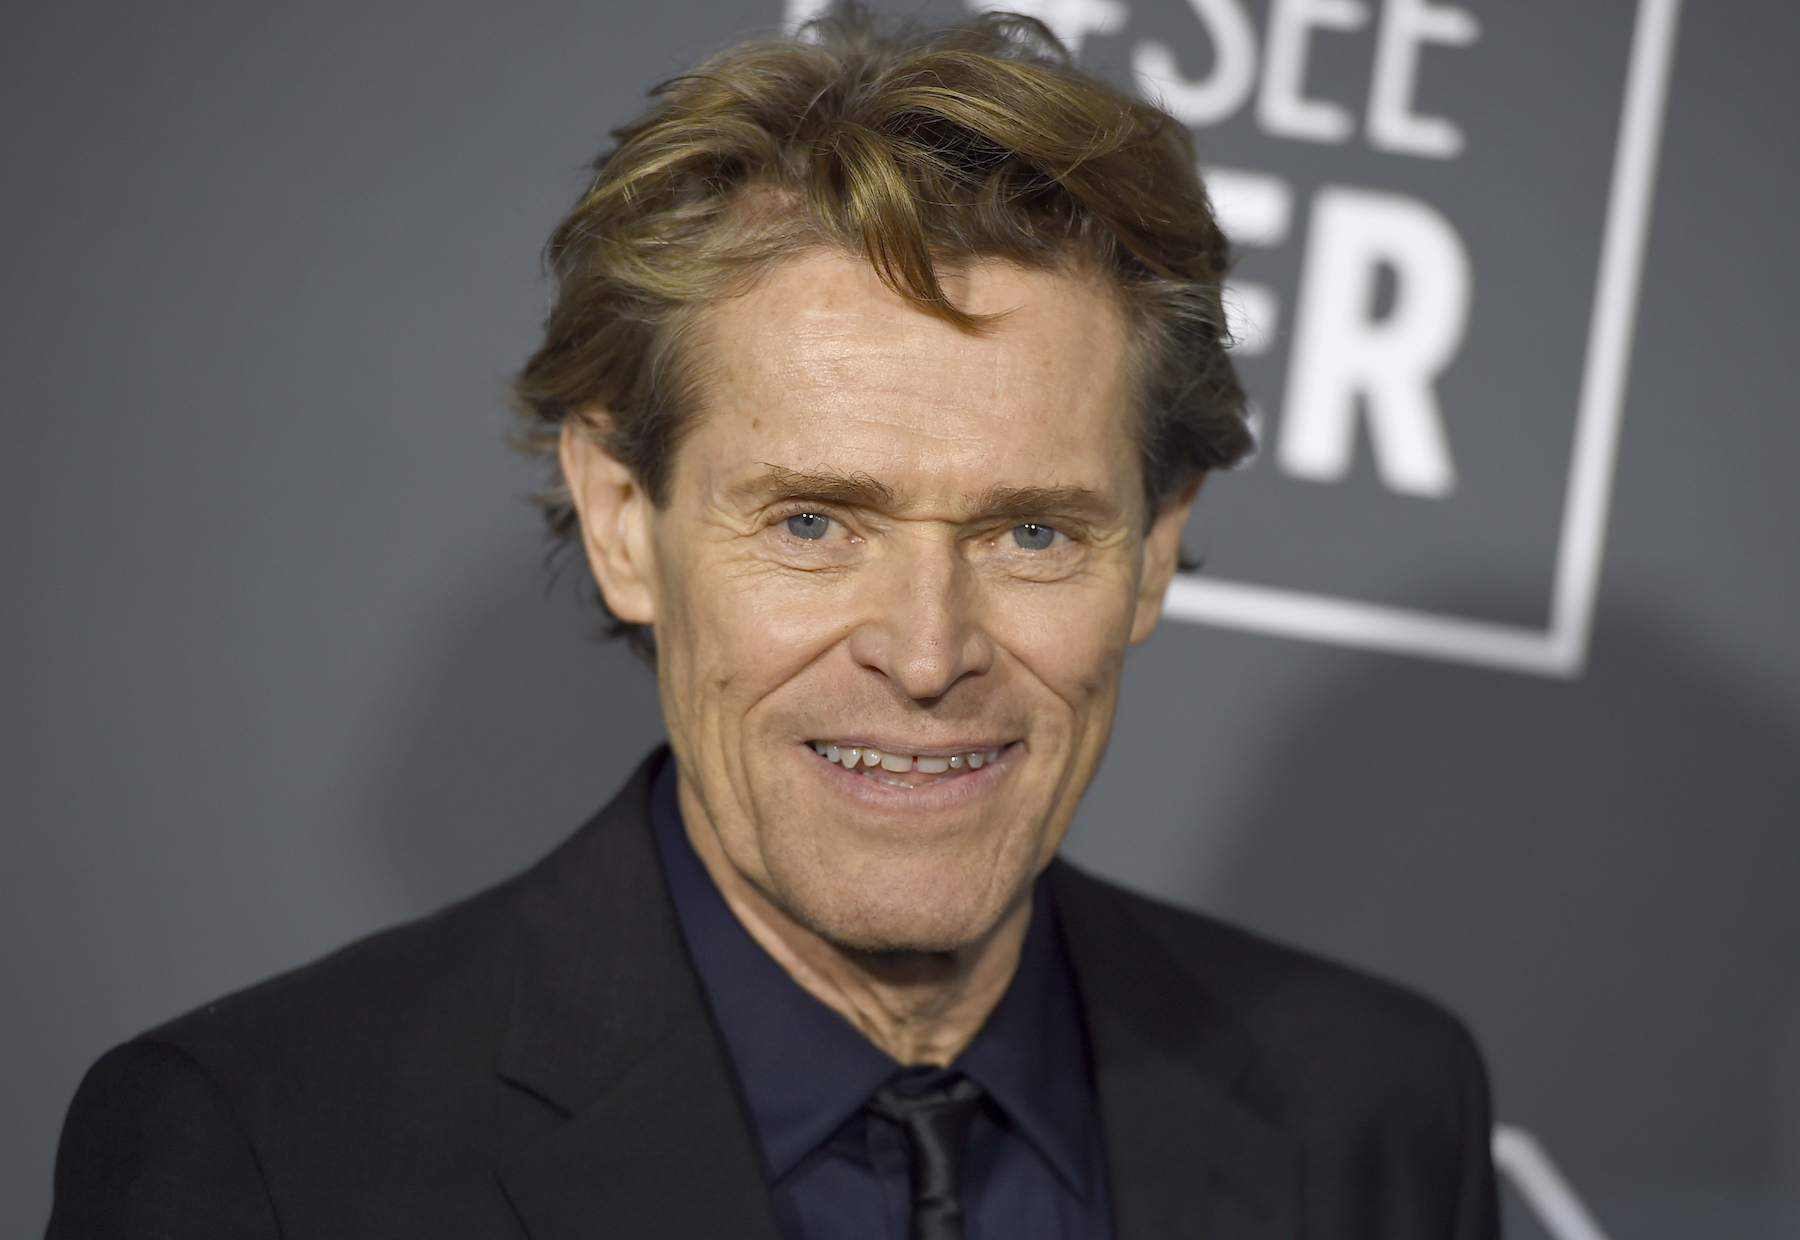 "<div class=""meta image-caption""><div class=""origin-logo origin-image ap""><span>AP</span></div><span class=""caption-text"">Willem Dafoe arrives at the 24th annual Critics' Choice Awards on Sunday, Jan. 13, 2019, at the Barker Hangar in Santa Monica, Calif. (Jordan Strauss/Invision/AP)</span></div>"